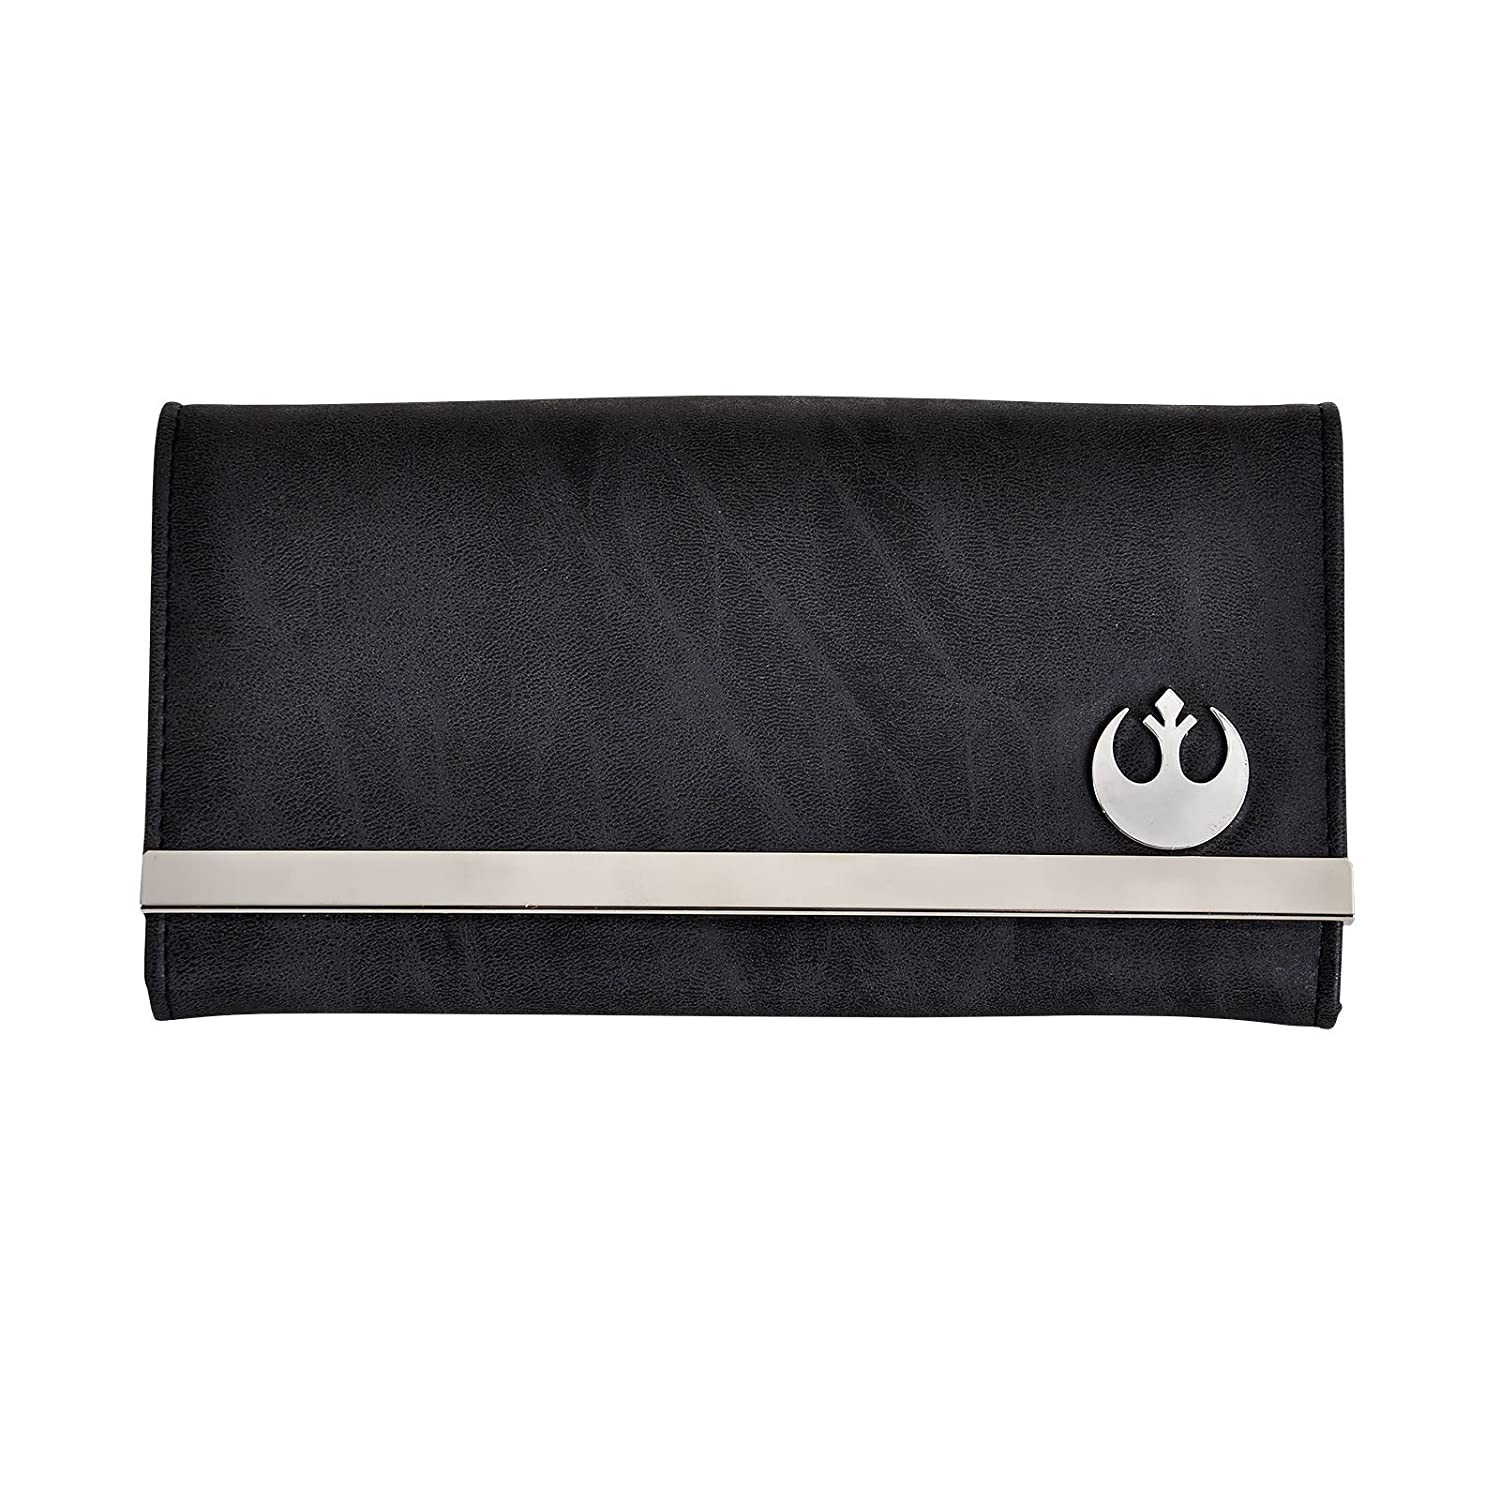 COTTON DIVISION Star Wars Rebel Alliance Logotipo Monedero ...